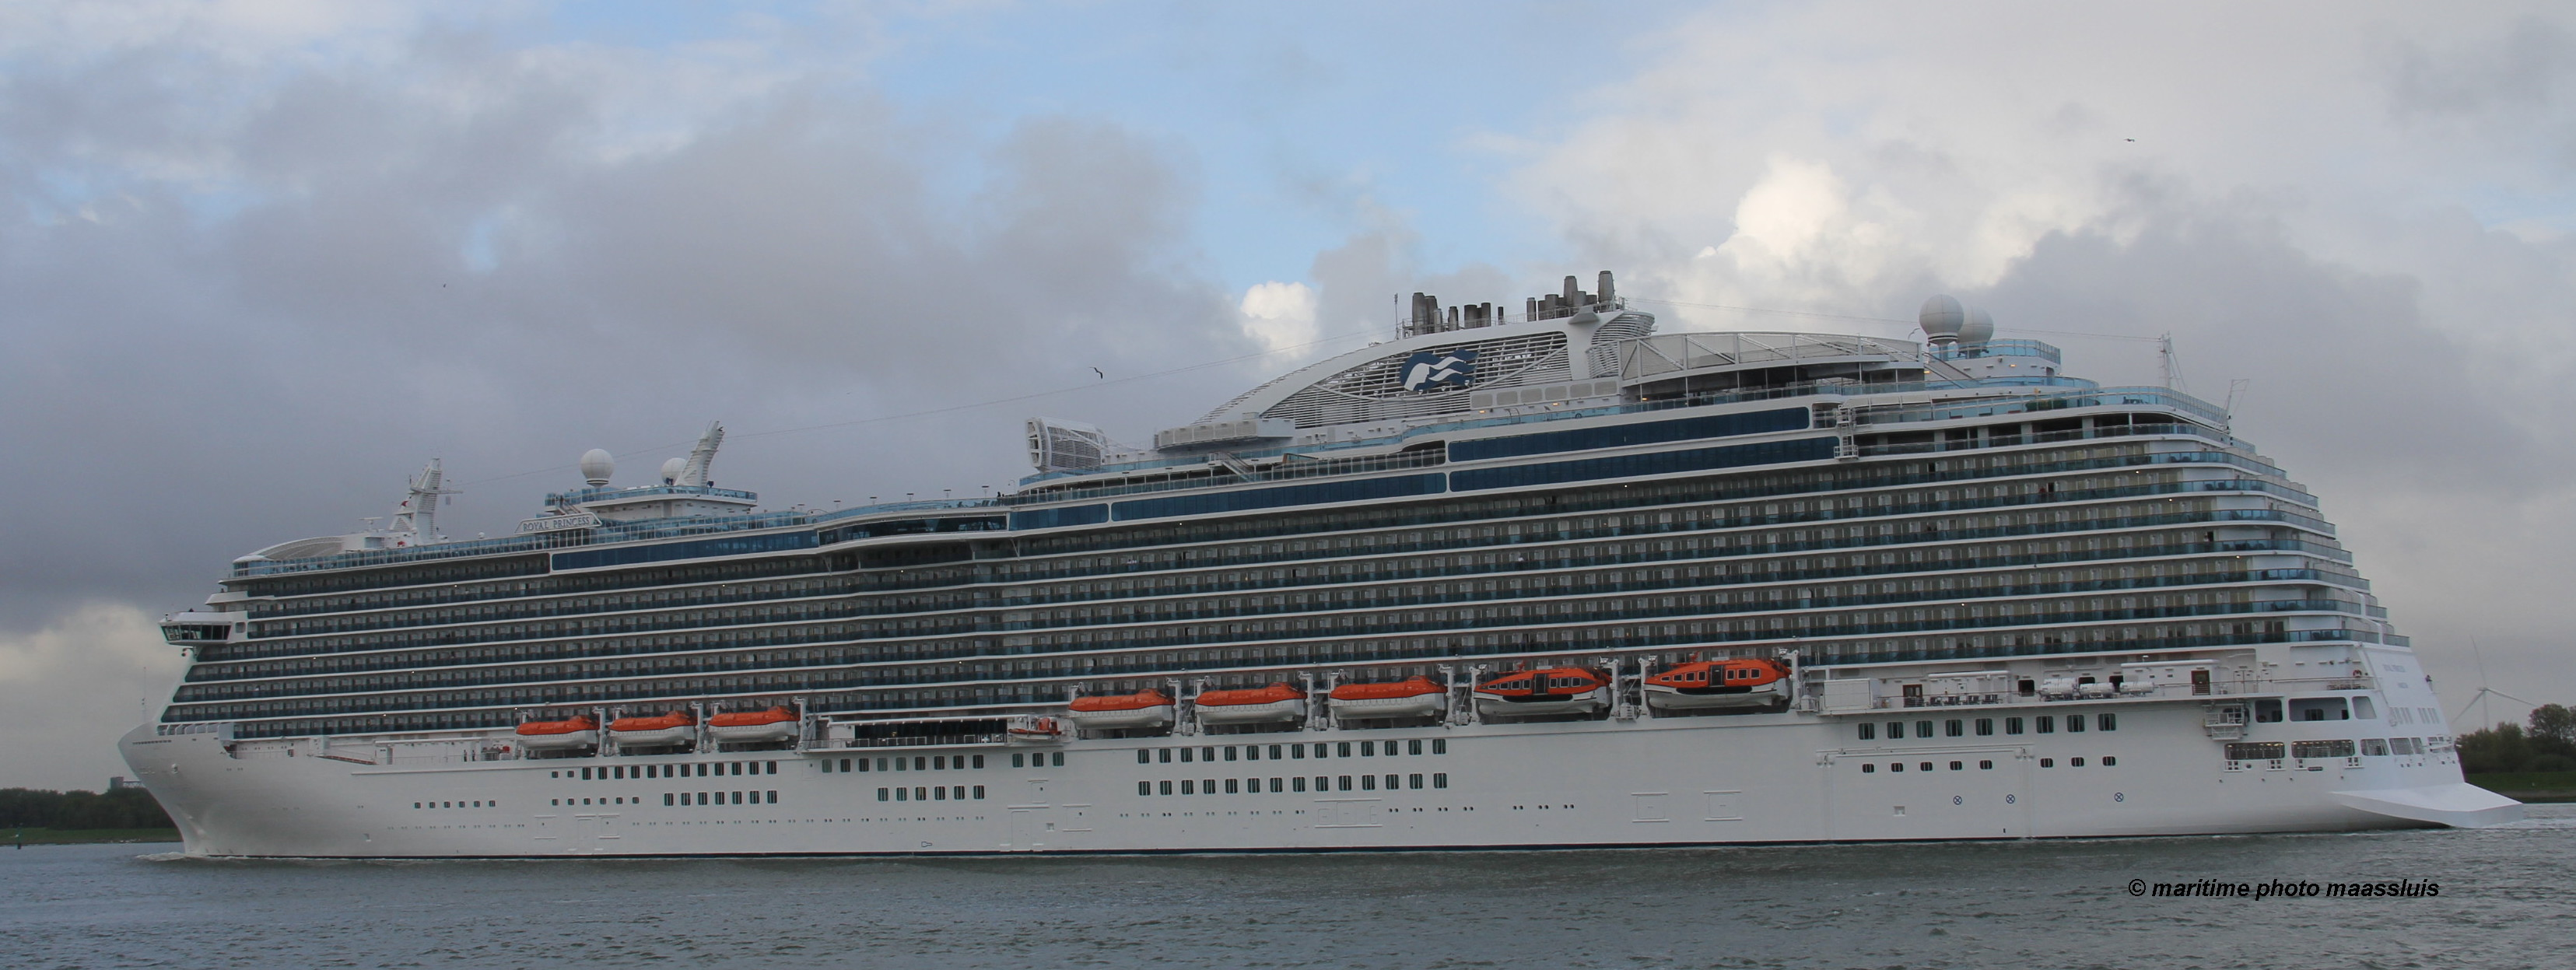 royalprincess03.jpg